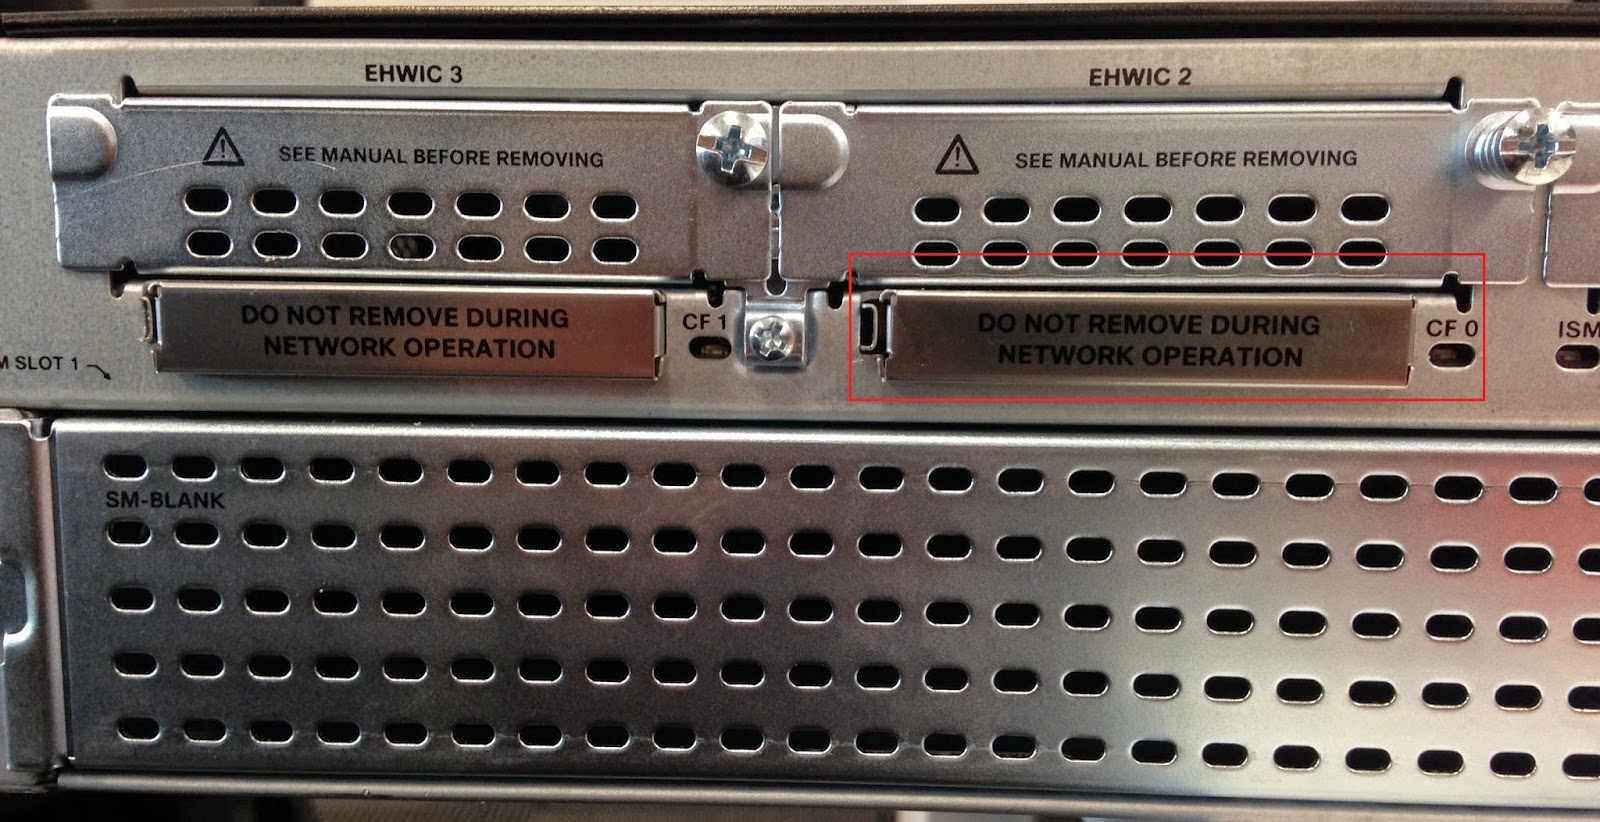 My network lab cisco 2900 password recovery via ejecting compact flash cf card